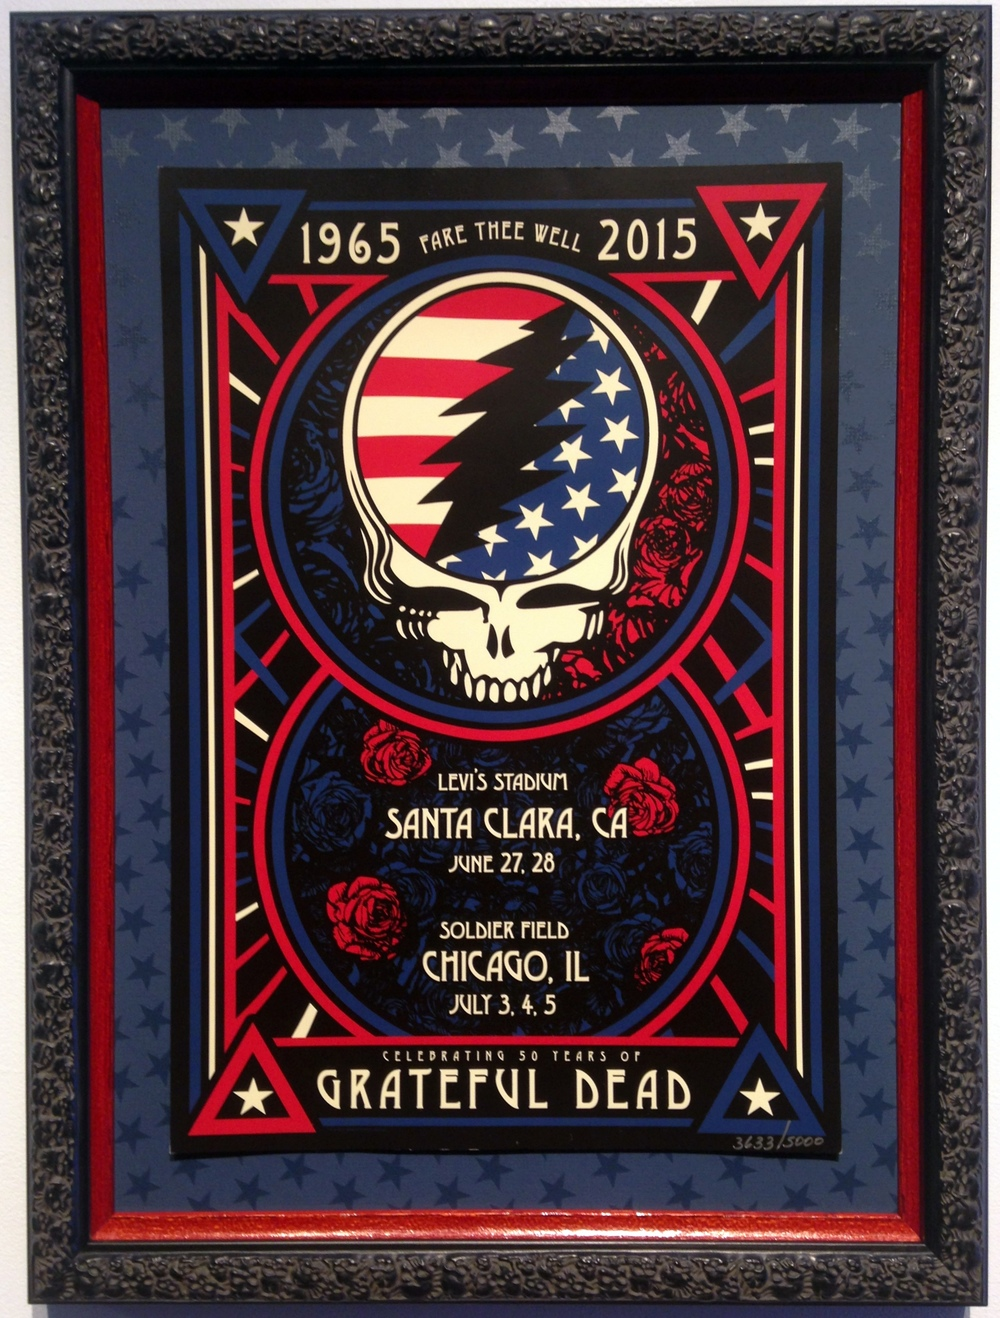 50 years of the Dead poster from 2015